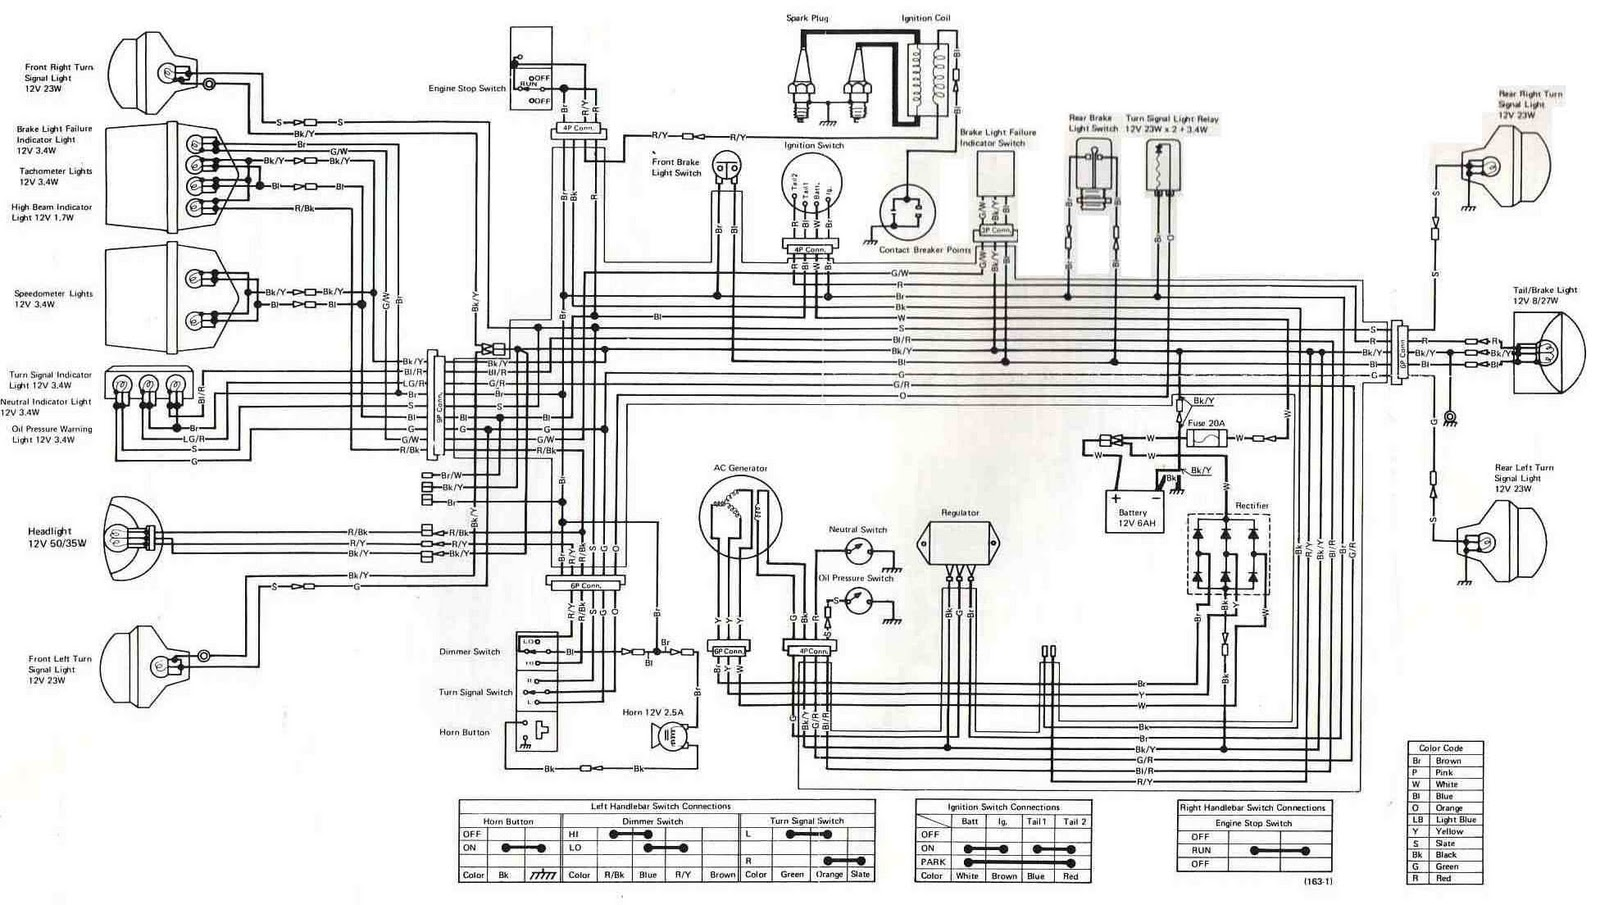 Kawasaki 2510 Wiring Diagram Online Mule Engine Diagrams Change Your Idea With Design U2022